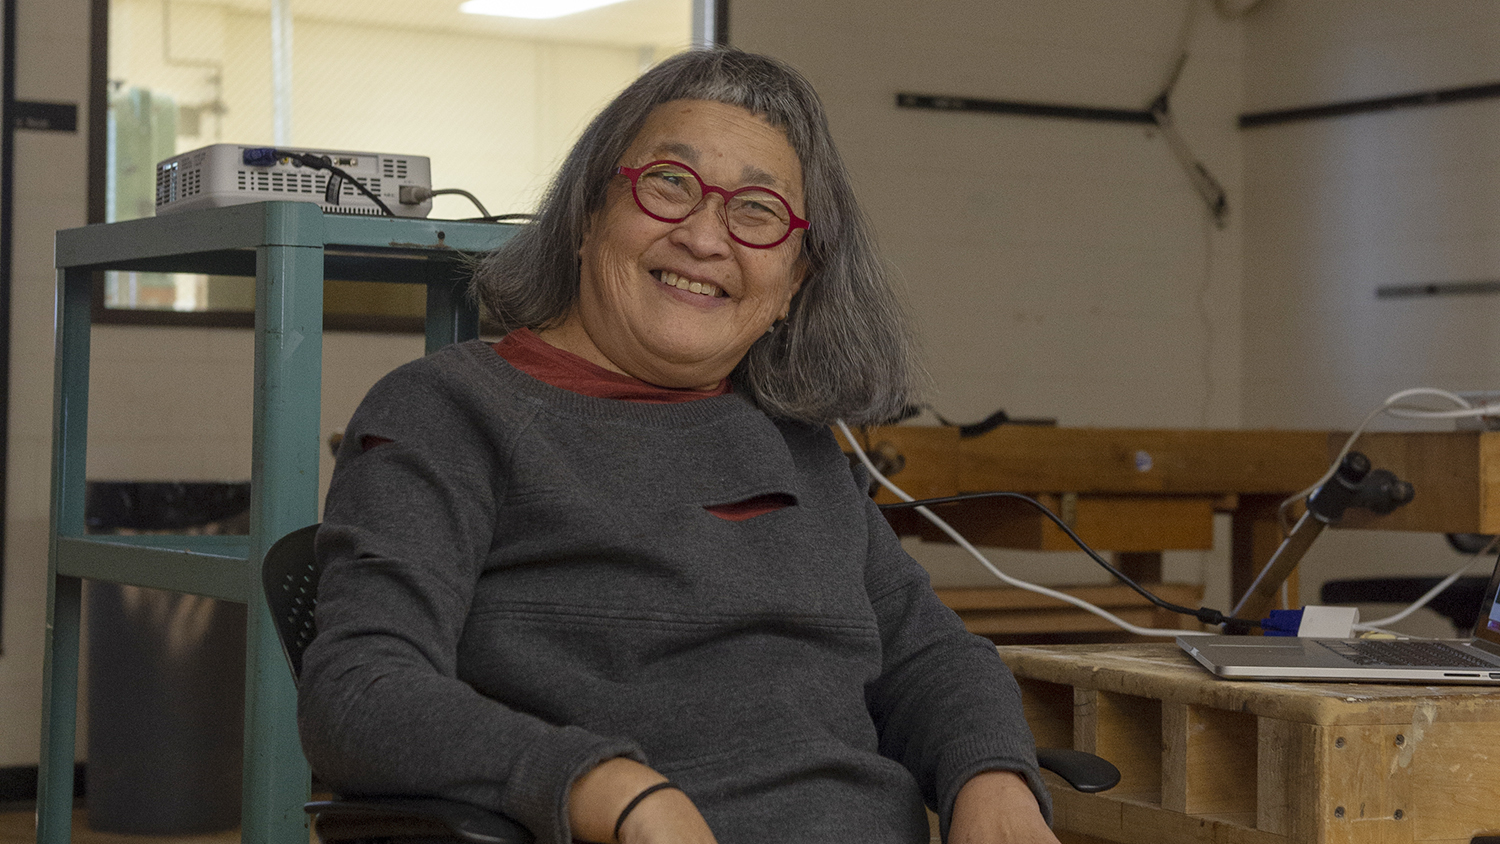 Wendy Maruyama, a pioneering female artist, in RIT's furniture design studio during a campus visit in 2018.